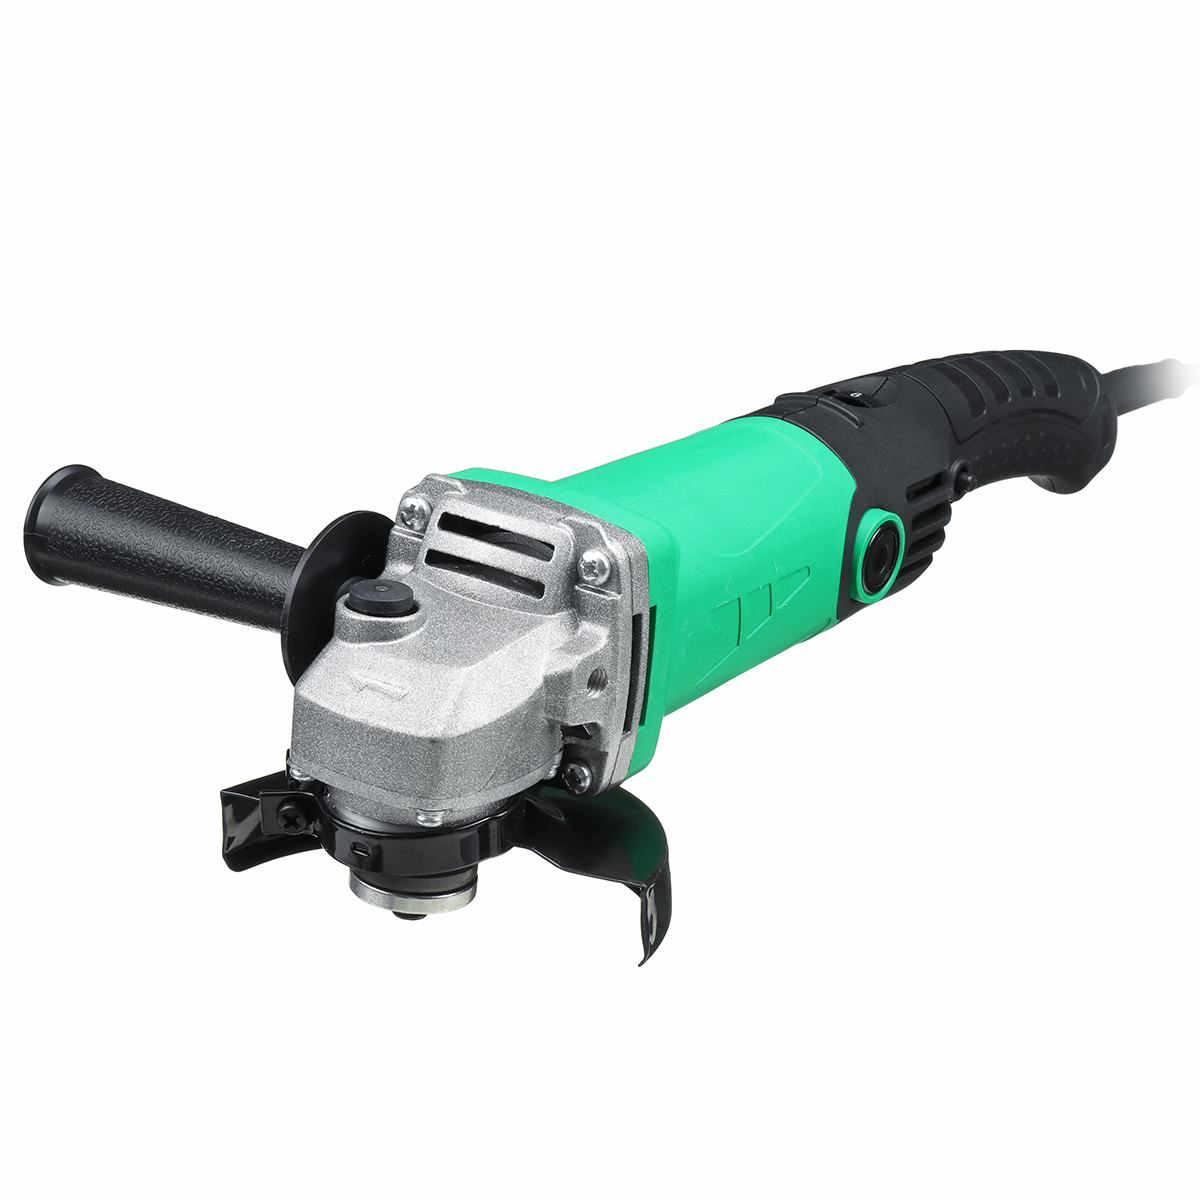 2000W Electric Angle Grinder 6 FIiles Speed Polishing Polisher Grinding Metal Stone Wood Cutting Woodworking Grinder Power Tool